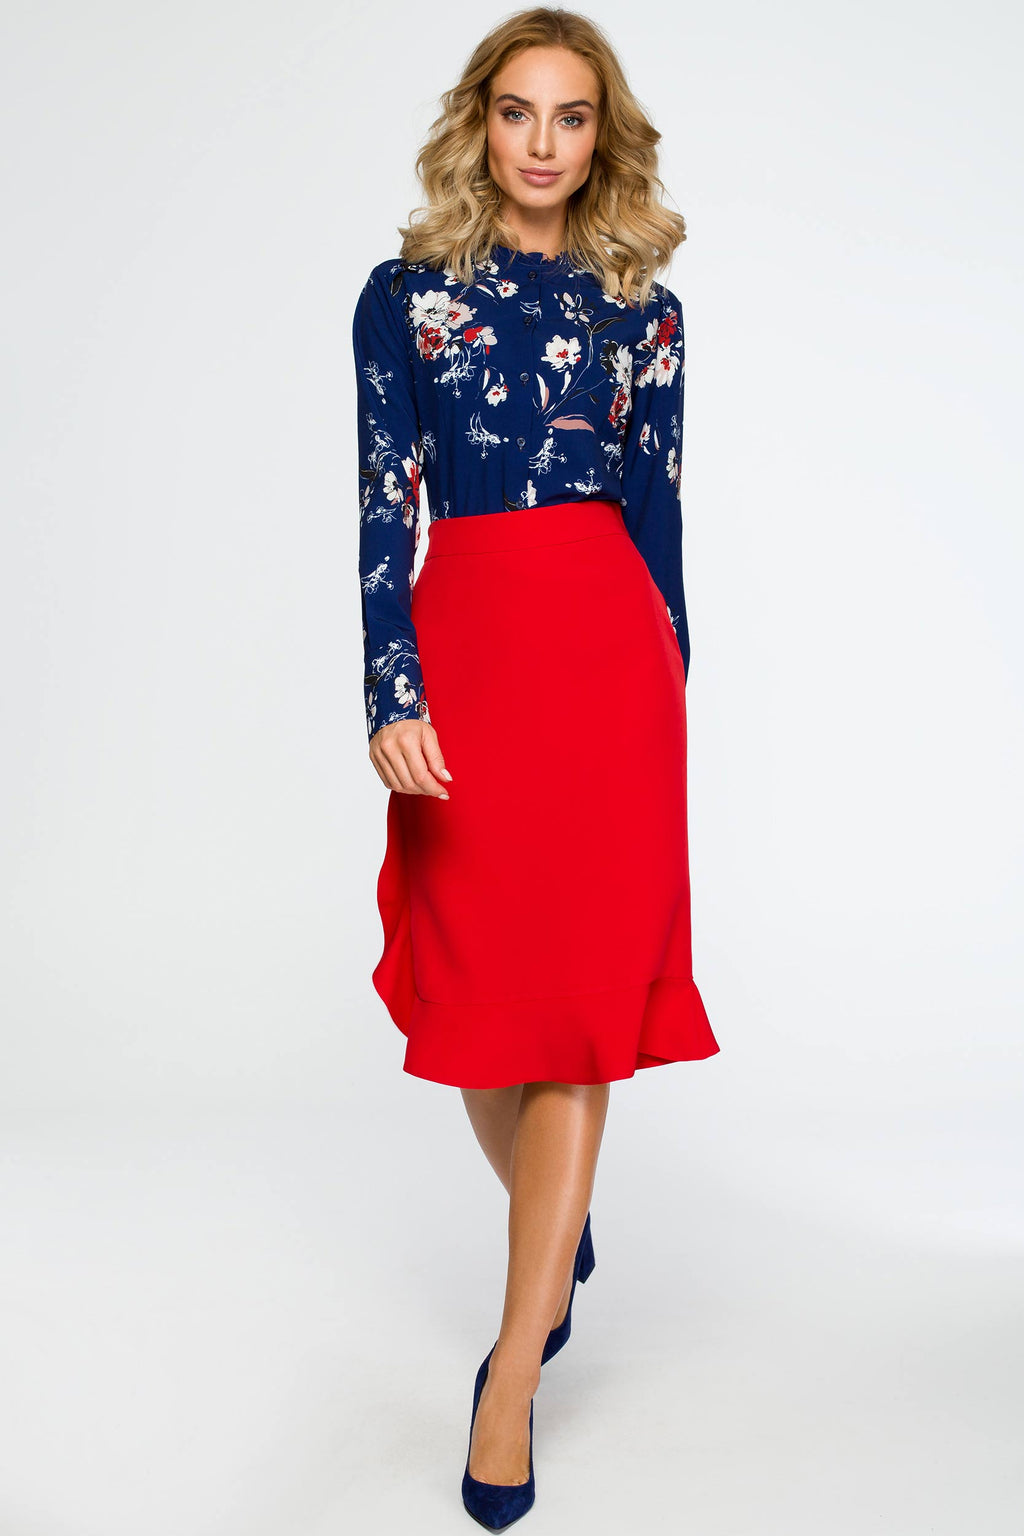 Navy Blue Floral Ruffled Neck Shirt - So Chic Boutique